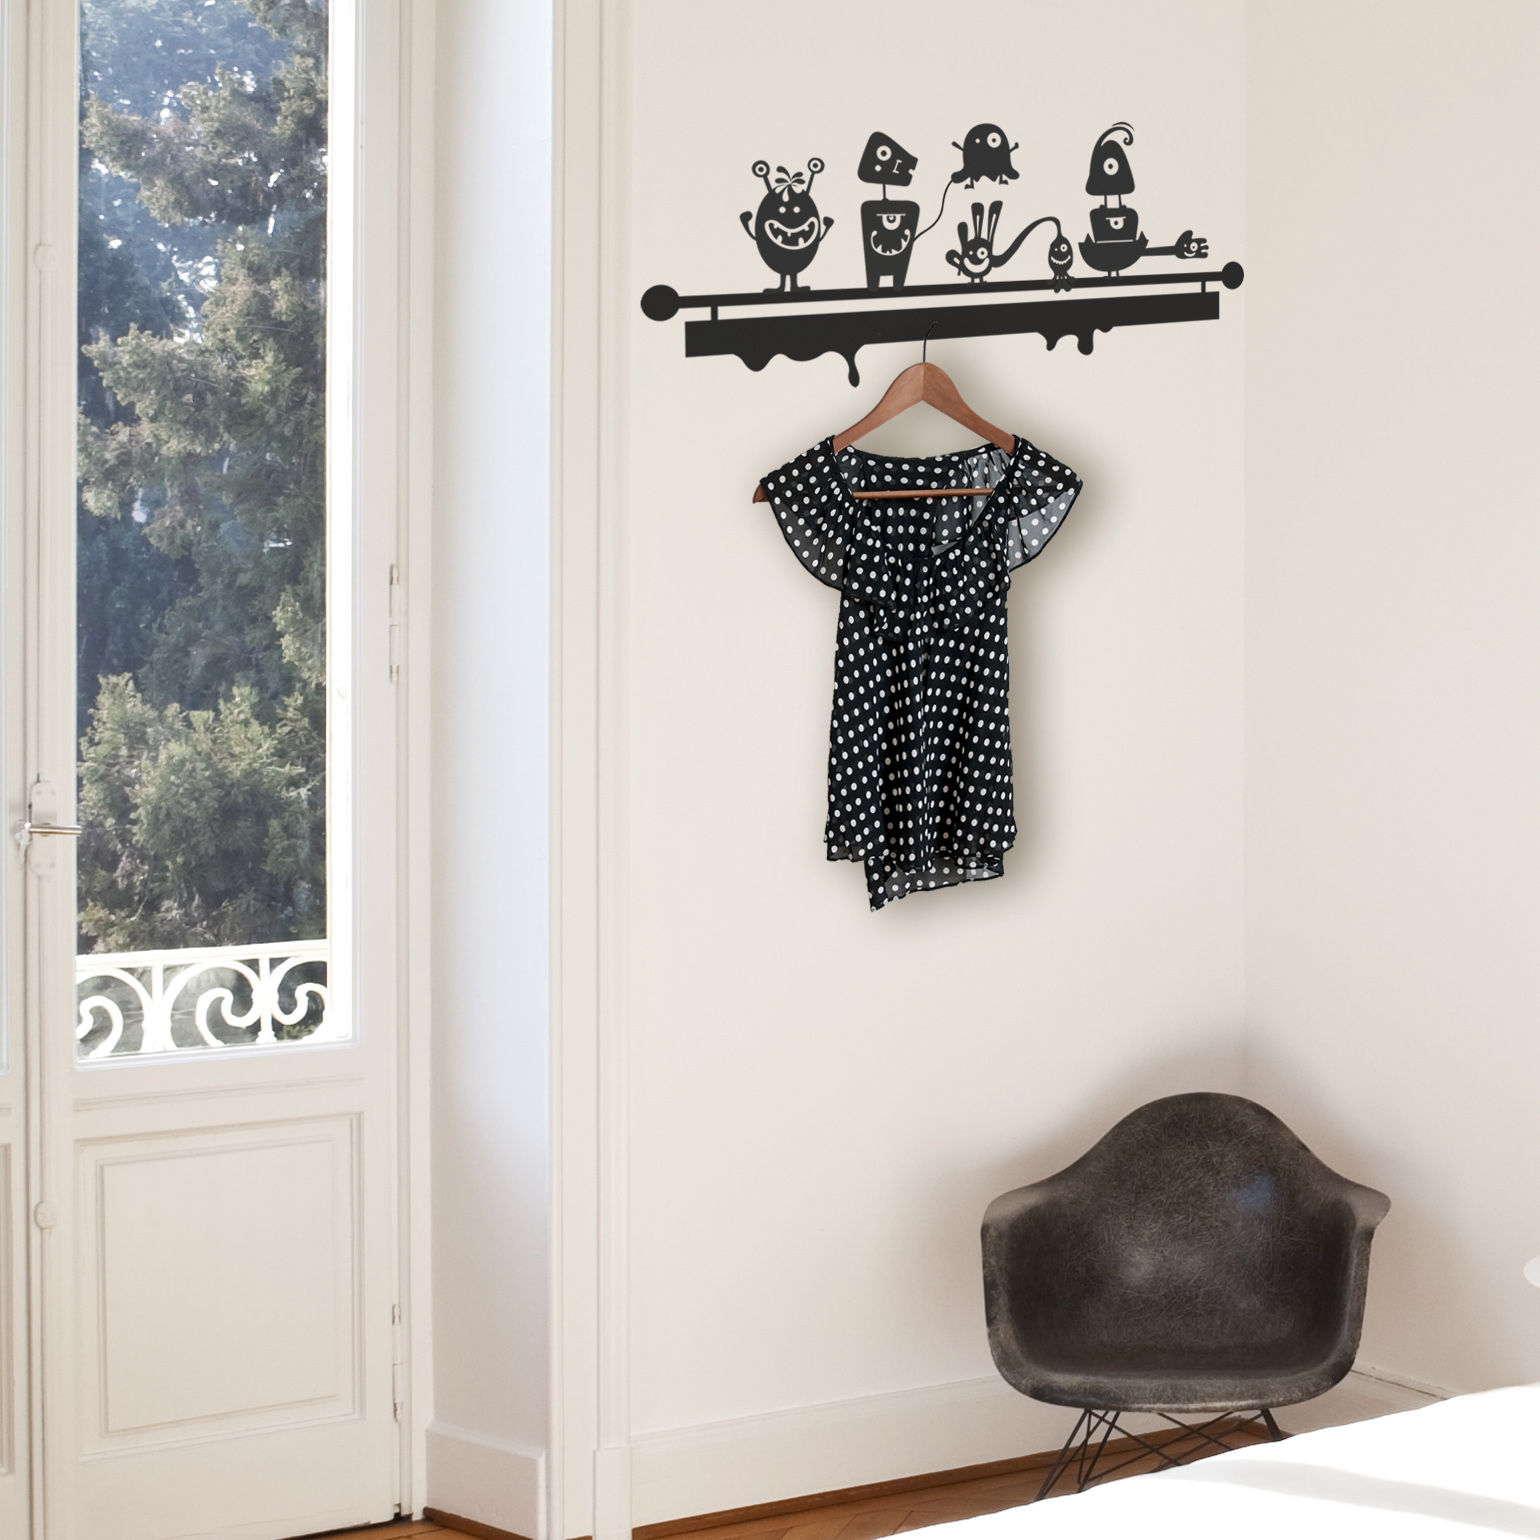 Monsters Coat Hanger Wall Decal